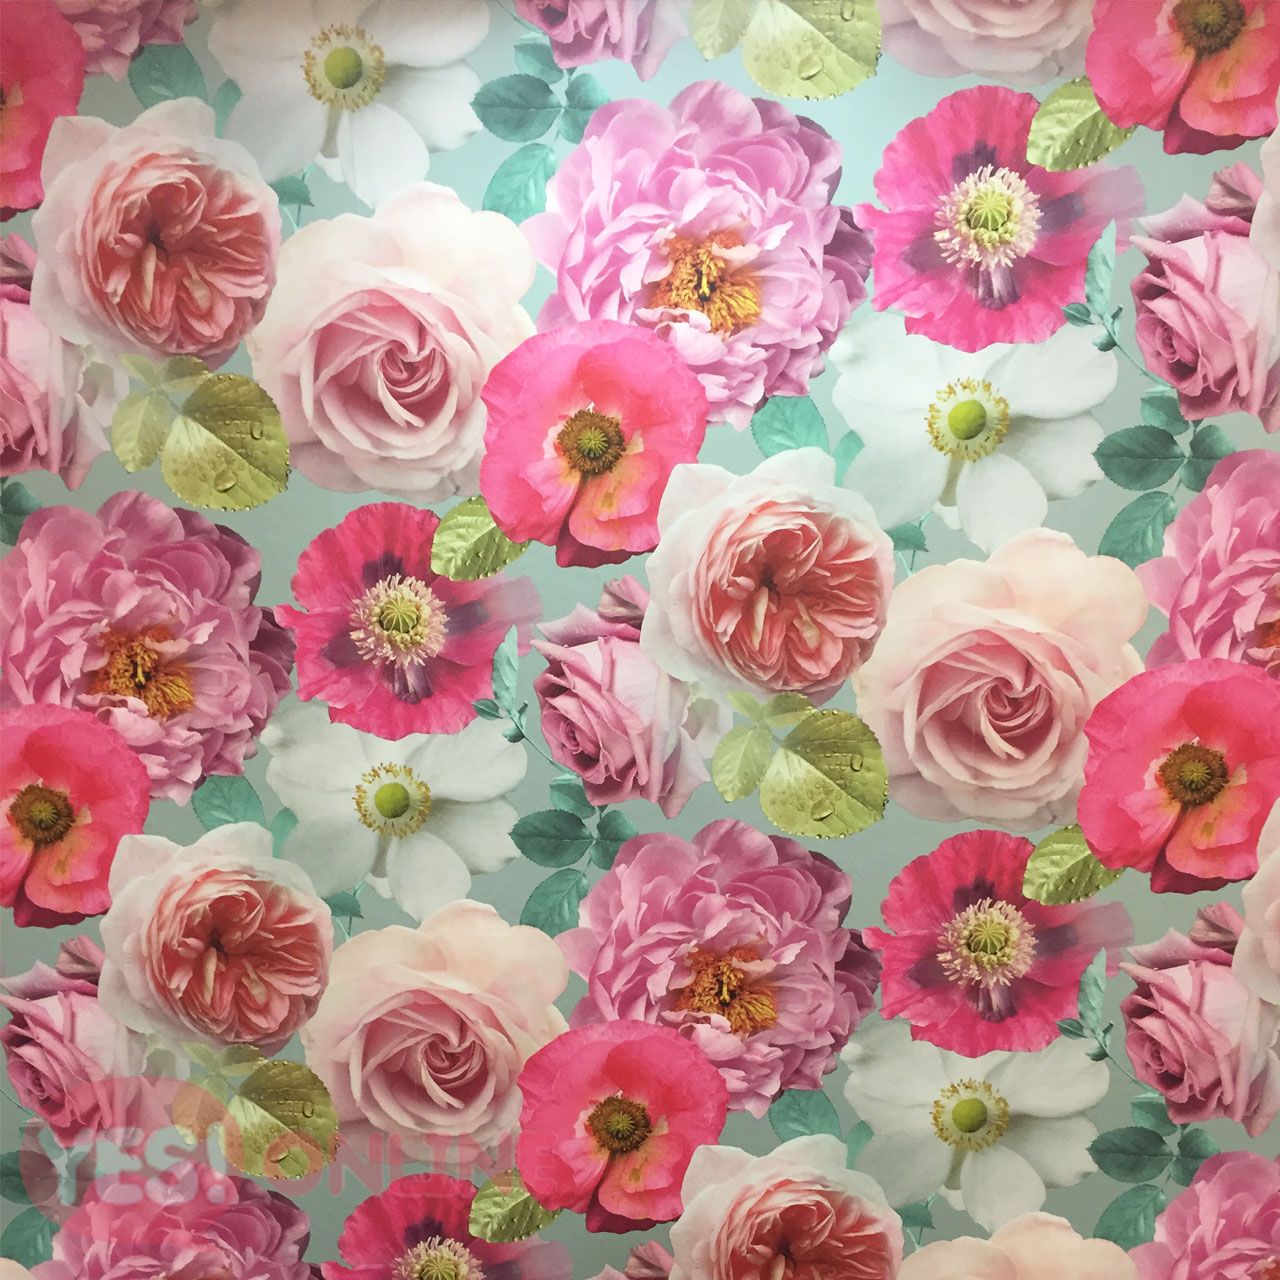 Flower Floral Country Garden Wallpaper Heavyweight Roses